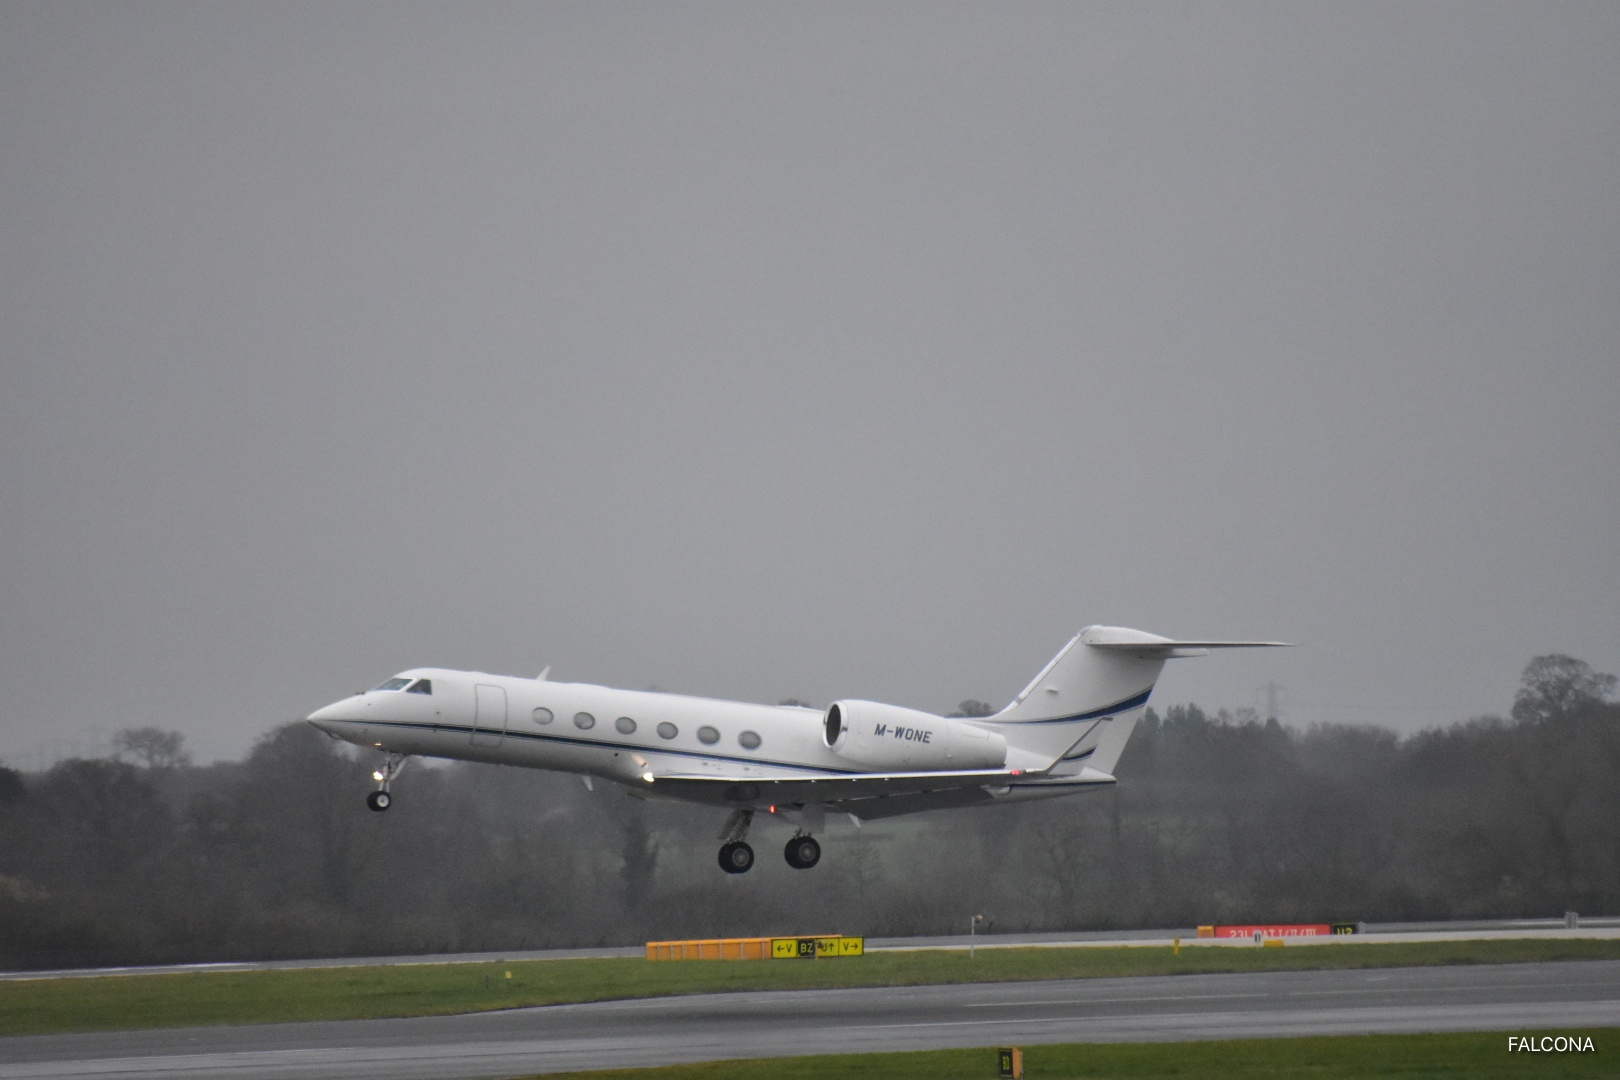 Gulfstream G450 TAKE OF AT MANCHESTER AIRPORT